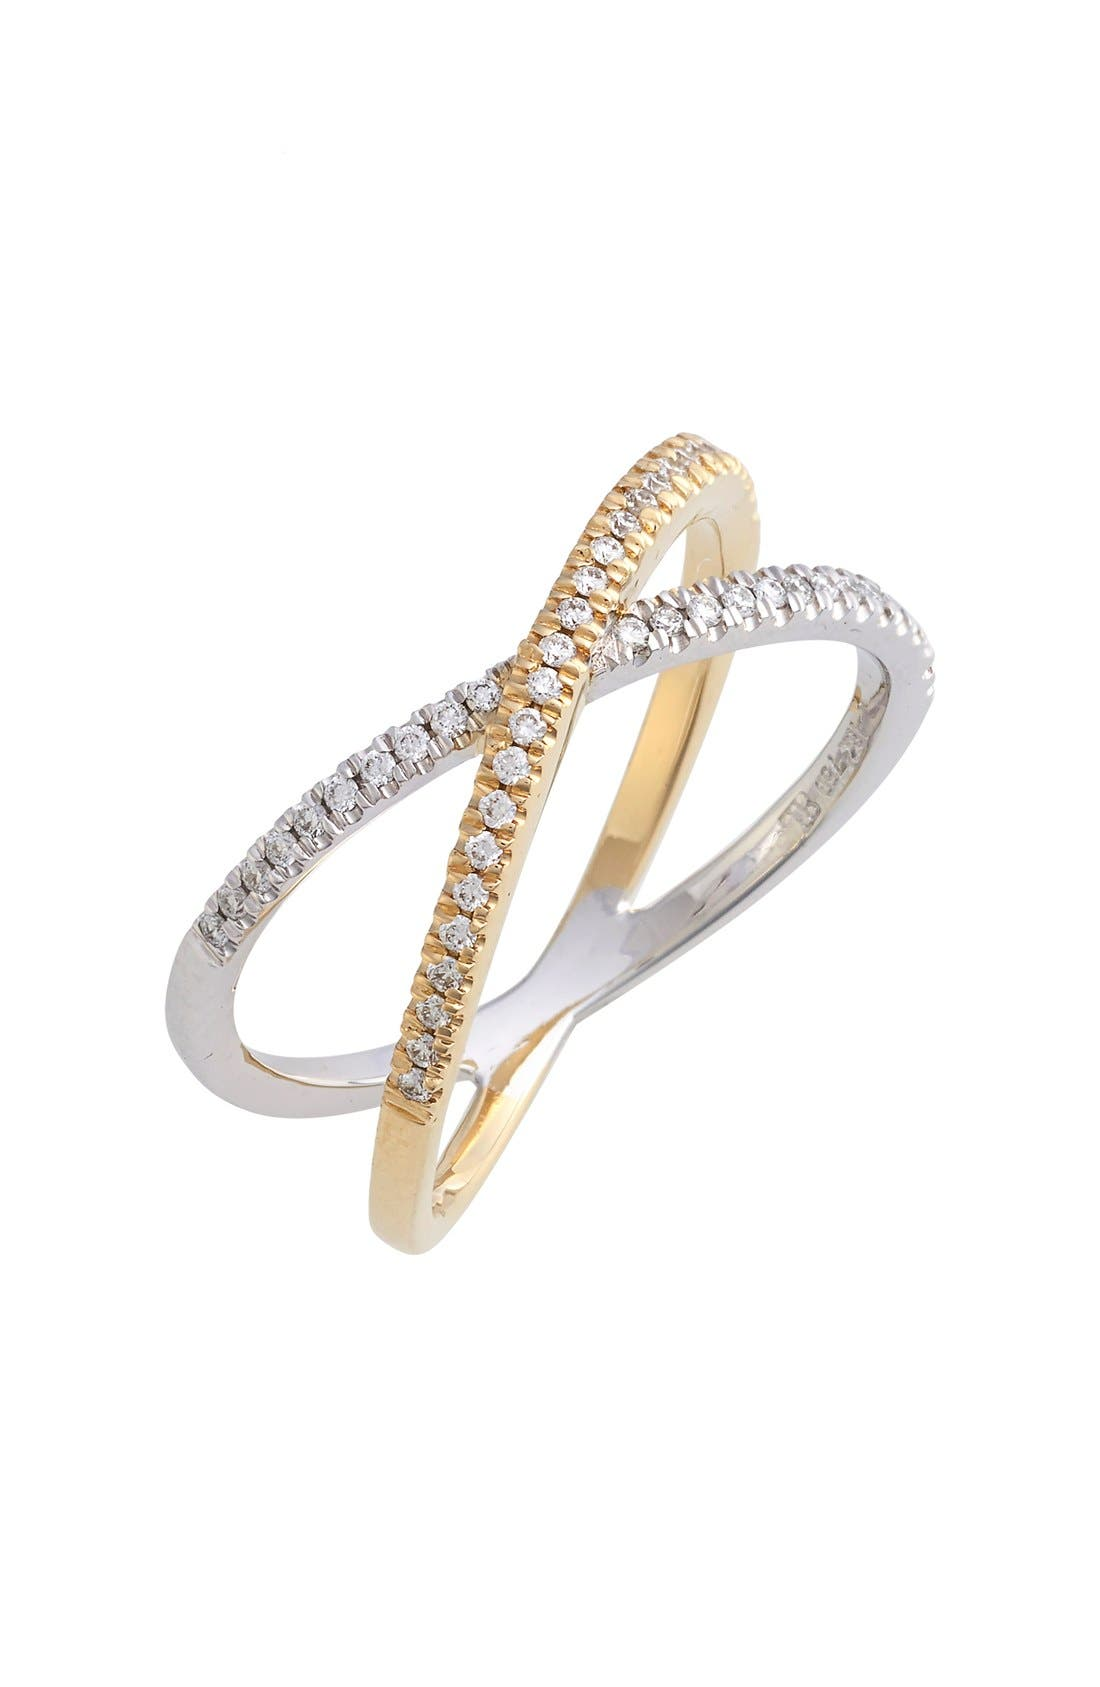 BONY LEVY, Stackable Crossover Diamond Ring, Main thumbnail 1, color, WHITE GOLD/ YELLOW GOLD